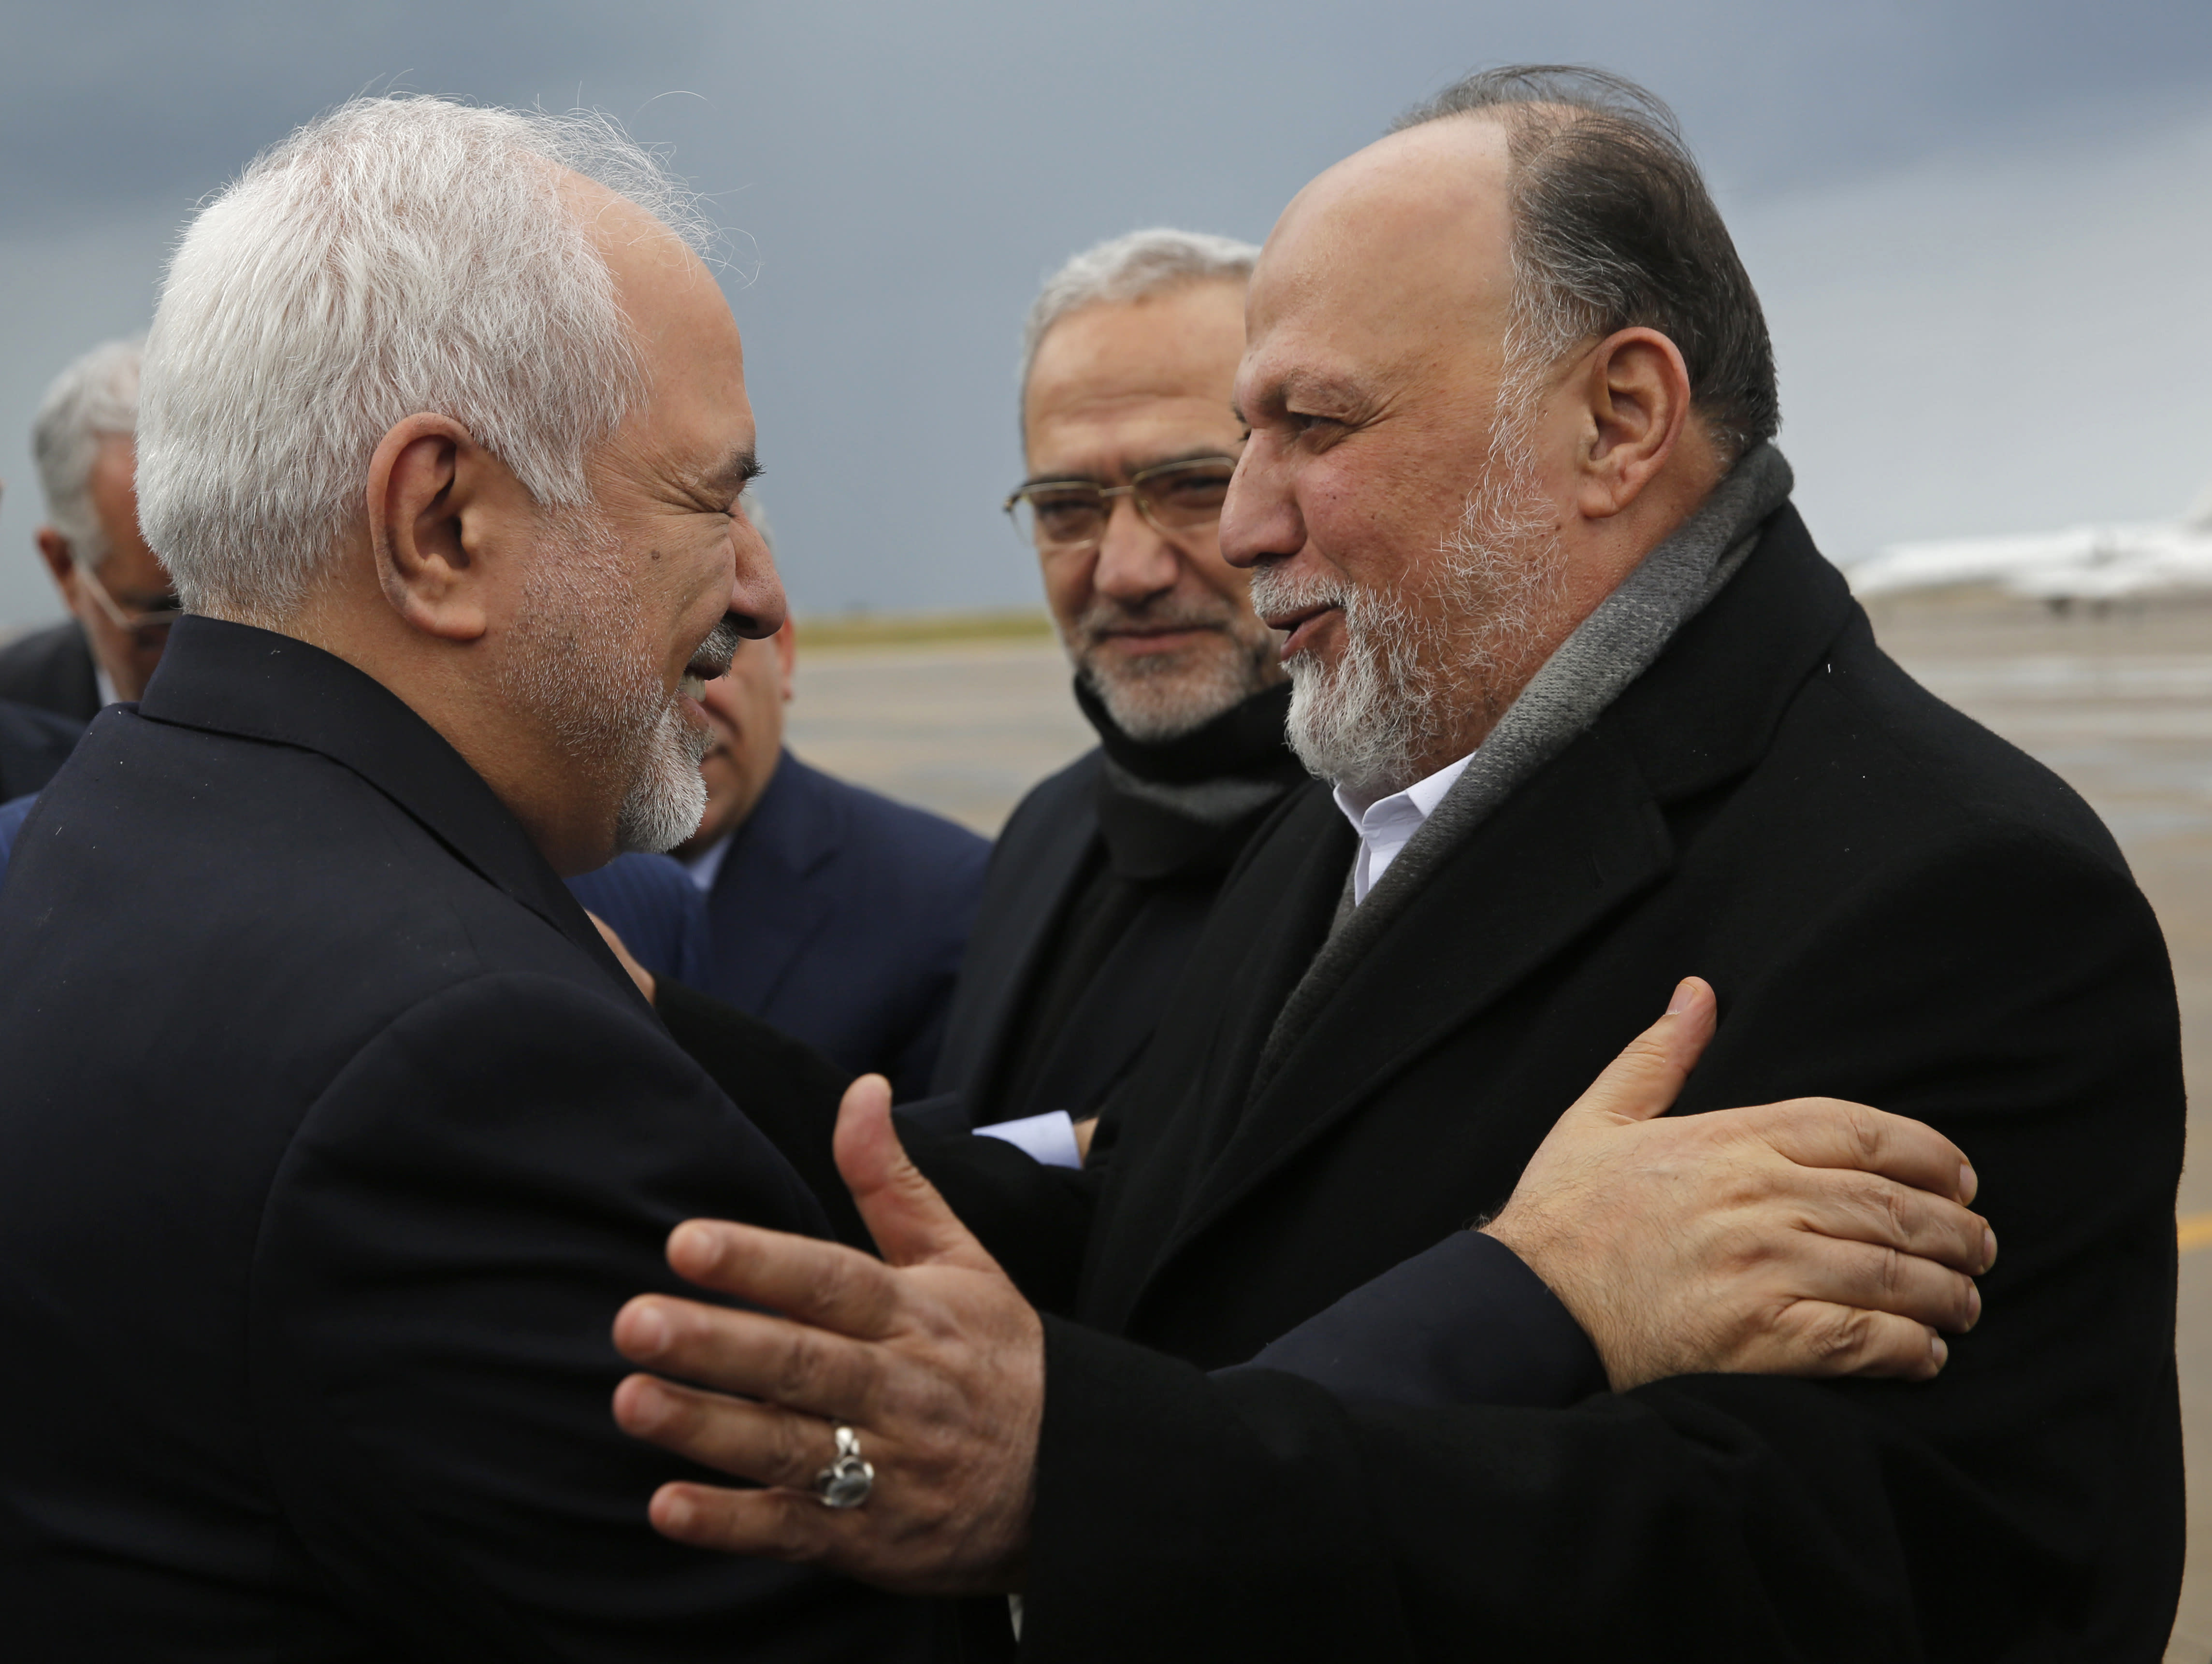 Iran's Foreign Minister Mohammad Javad Zarif, left, greets by Lebanese Hezbollah lawmaker, Ali Ammar, upon his arrival at Rafik Hariri Airport, in Beirut, Lebanon, Sunday, Feb. 10, 2019. Zarif said his country is ready to cooperate with the new Lebanese government, offering his country's support in all sectors. (AP Photo/Hussein Malla)